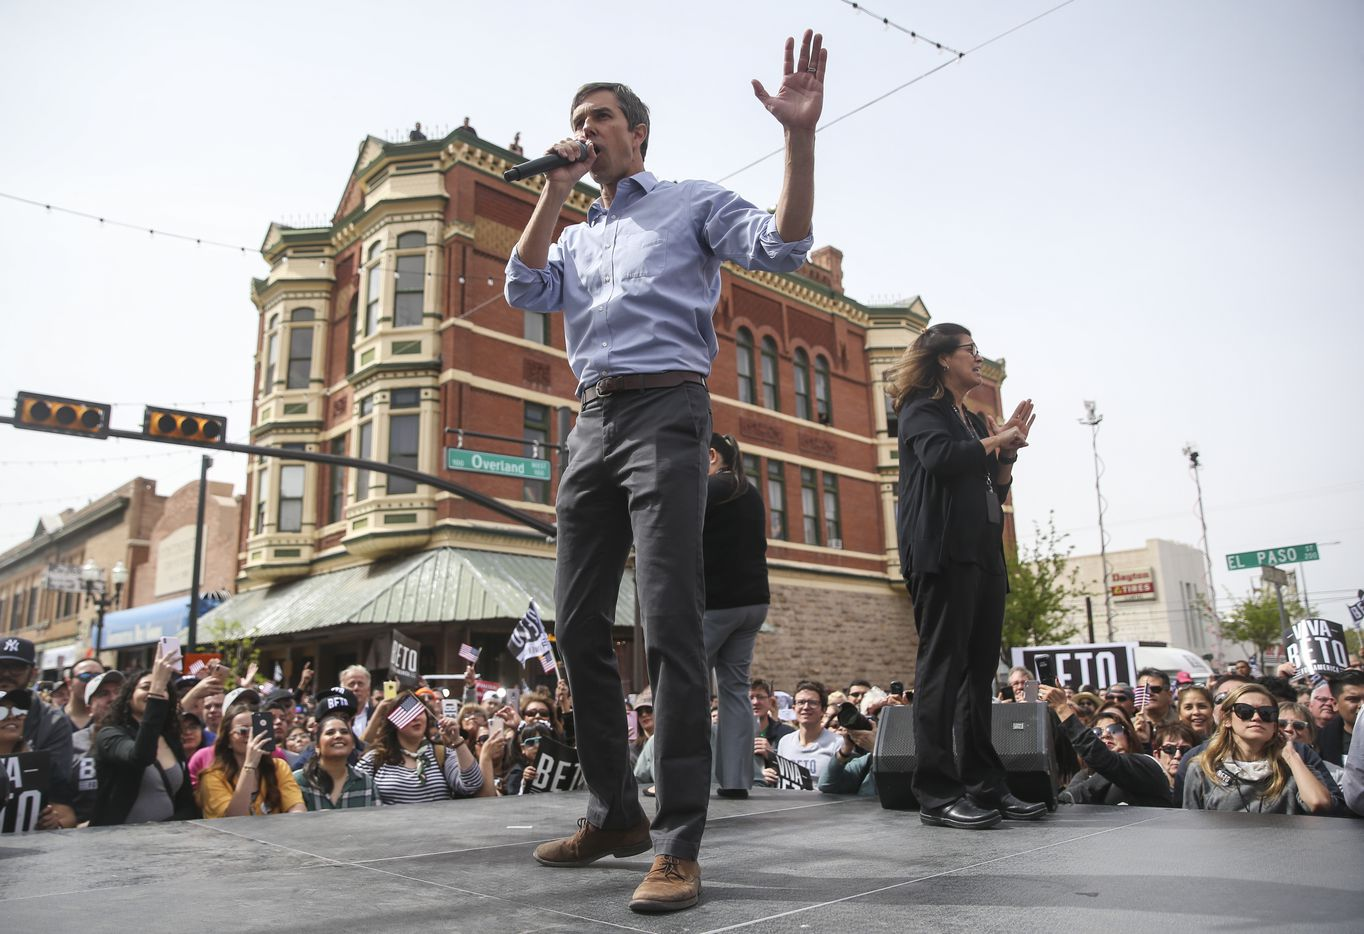 Beto O'Rourke speaks at a presidential campaign kickoff rally in downtown El Paso on Saturday, March 30, 2019.